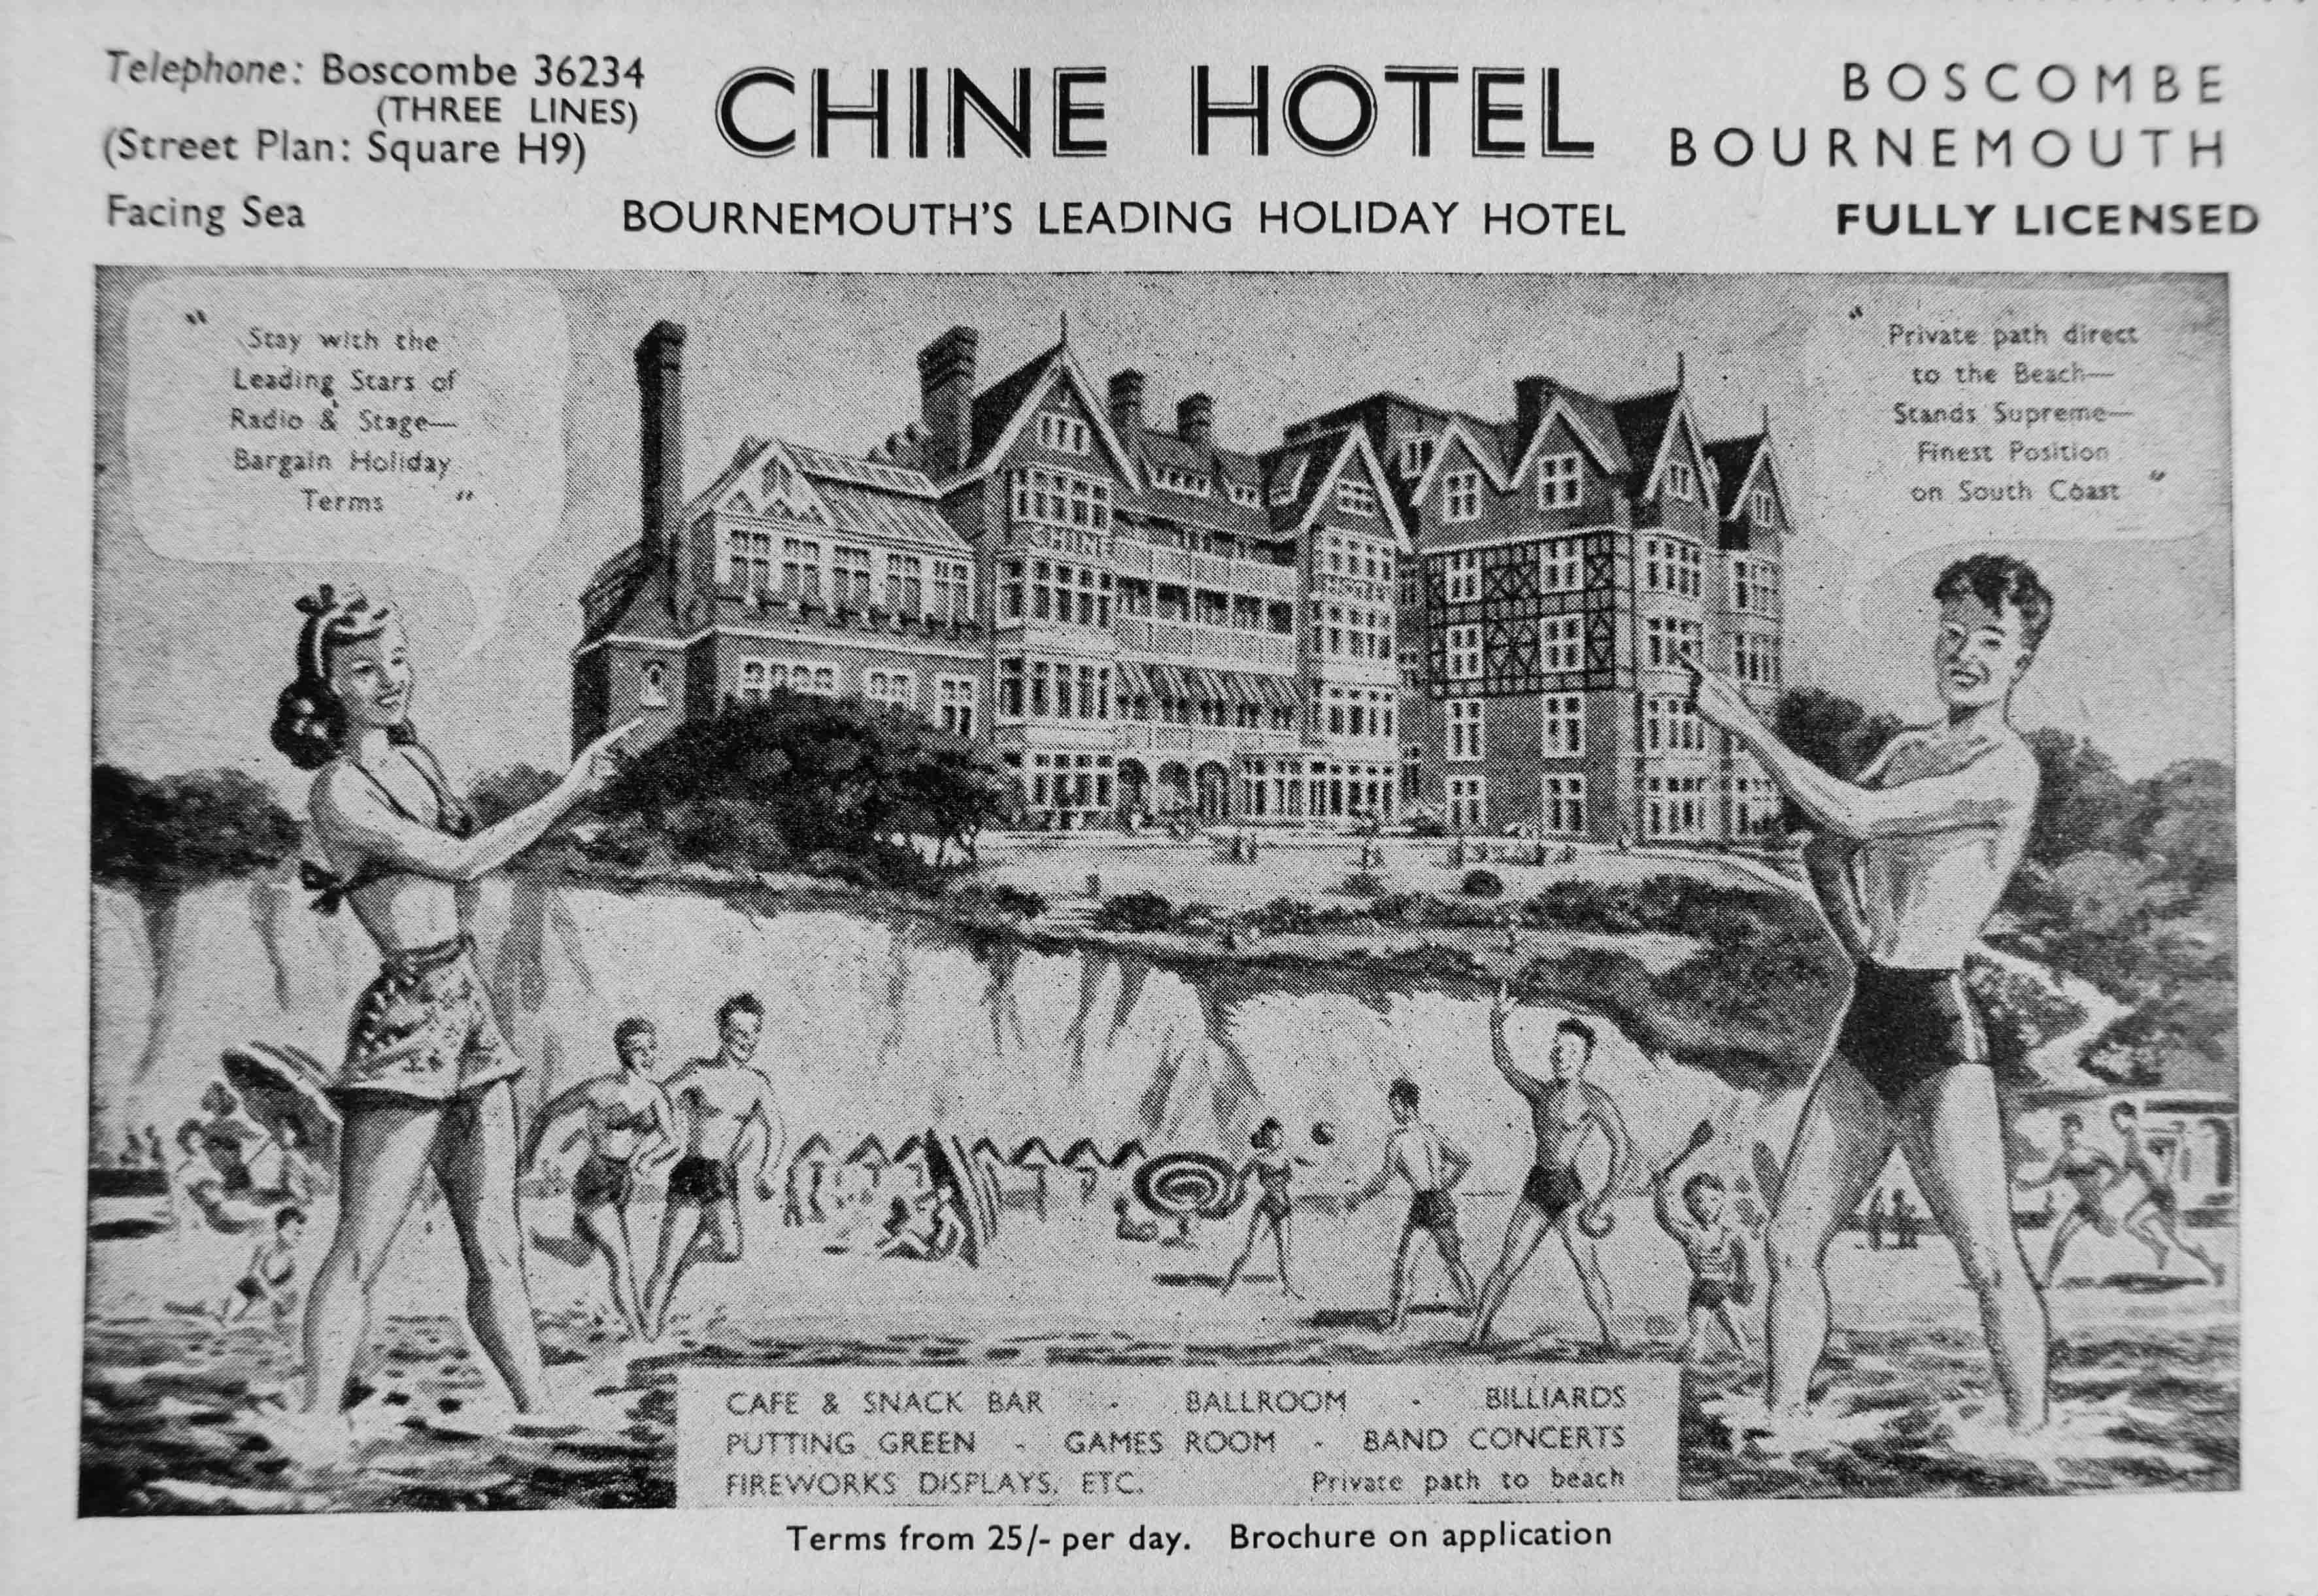 Chine Hotel from c1951b